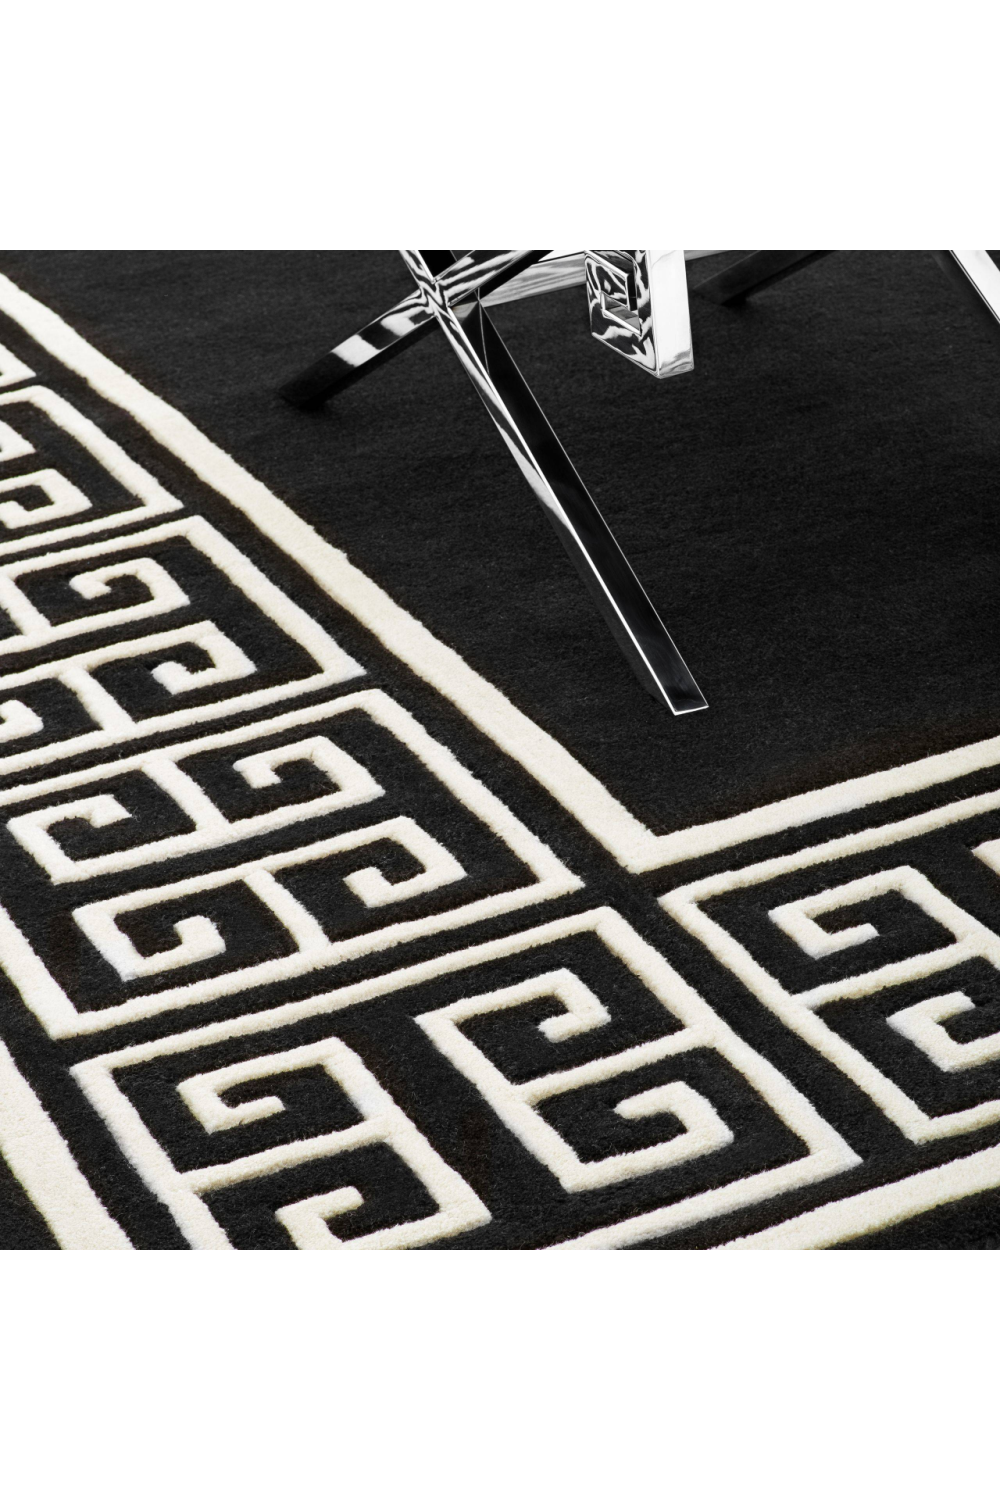 Black & Off-White Rug | Eichholtz Apollo (6x8)